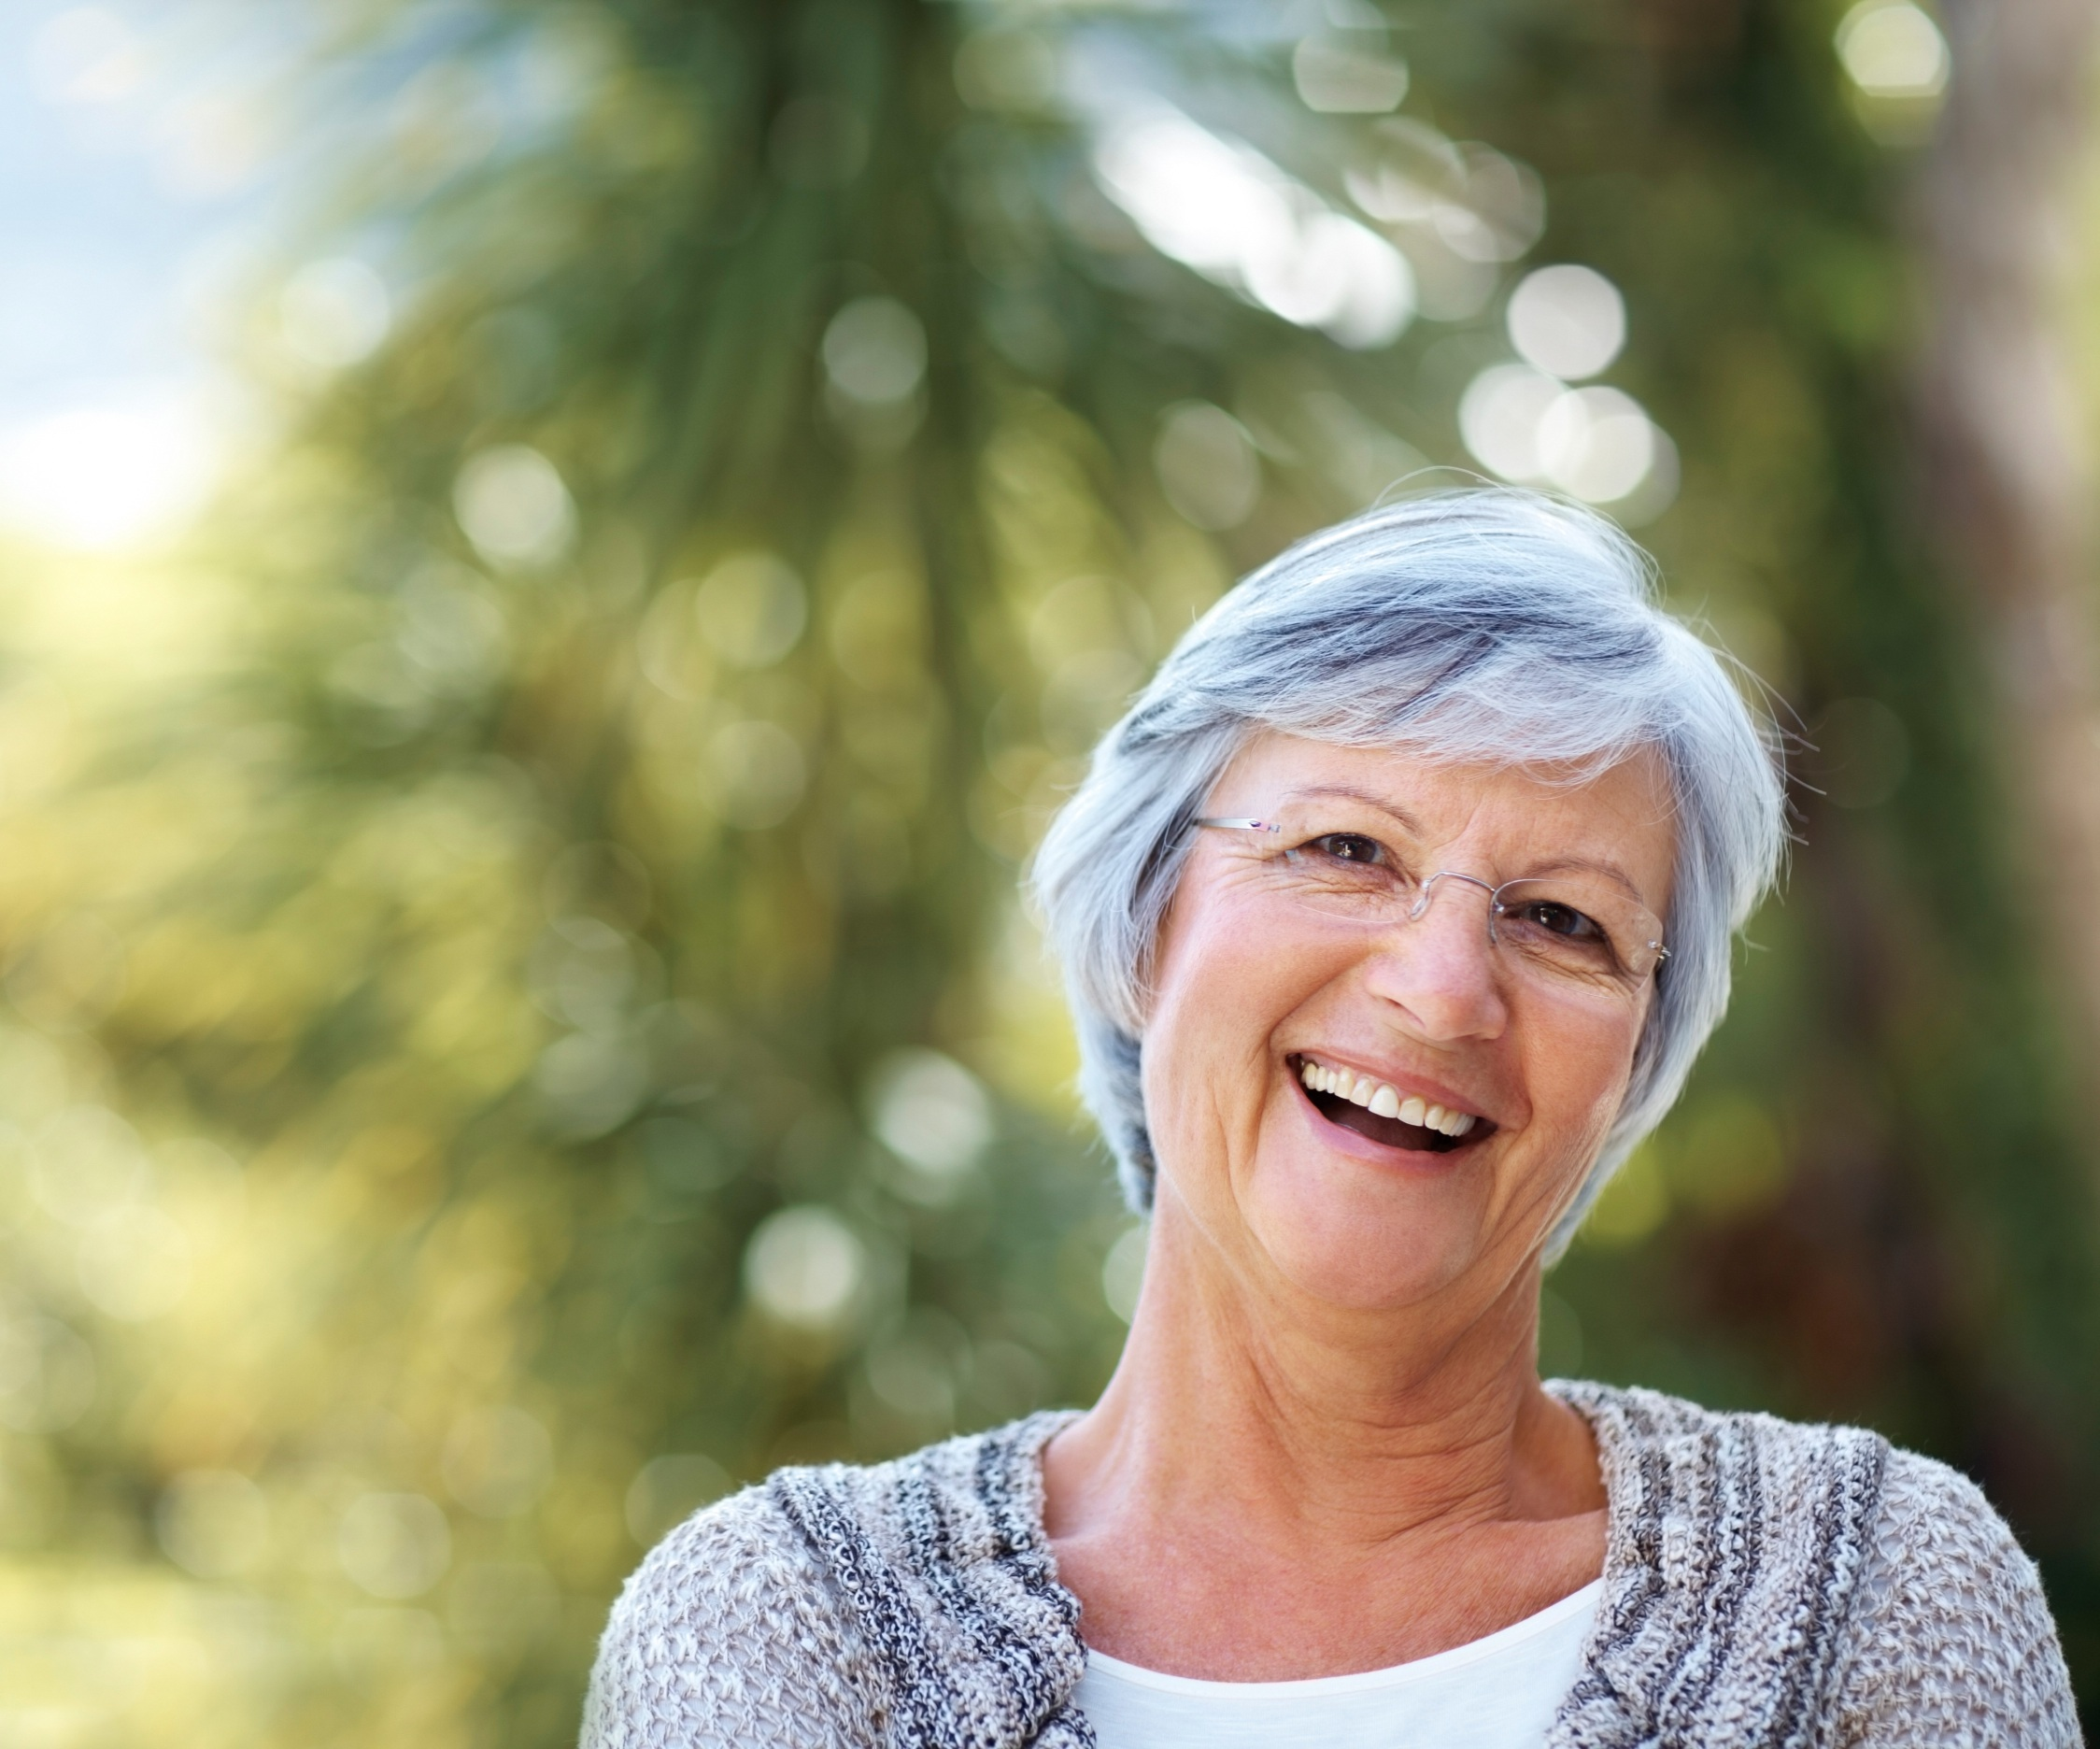 Enjoy a Restored Smile with Dentures and Partials from Schramm Dentistry